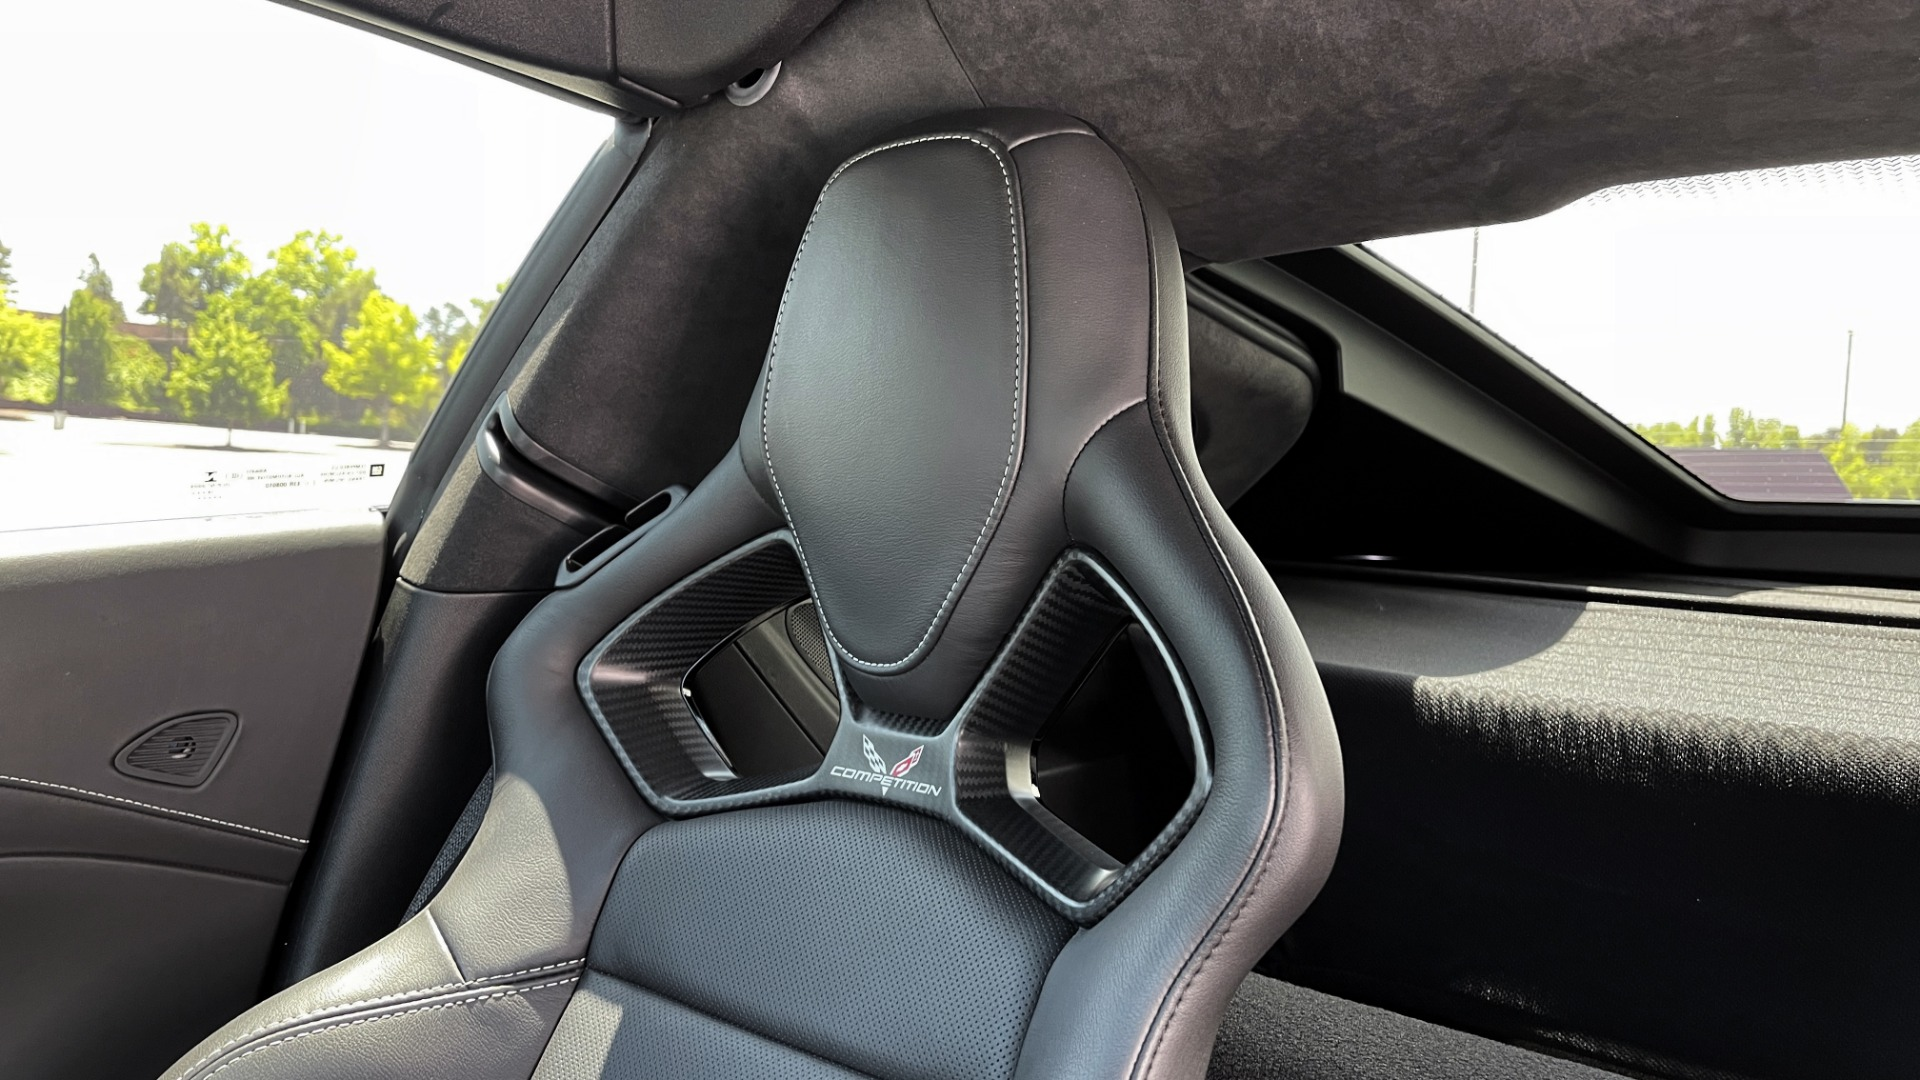 Used 2019 Chevrolet CORVETTE GRAND SPORT 3LT / SUPERCHARGED 6.2L V8 / NAV / REARVIEW for sale Sold at Formula Imports in Charlotte NC 28227 65